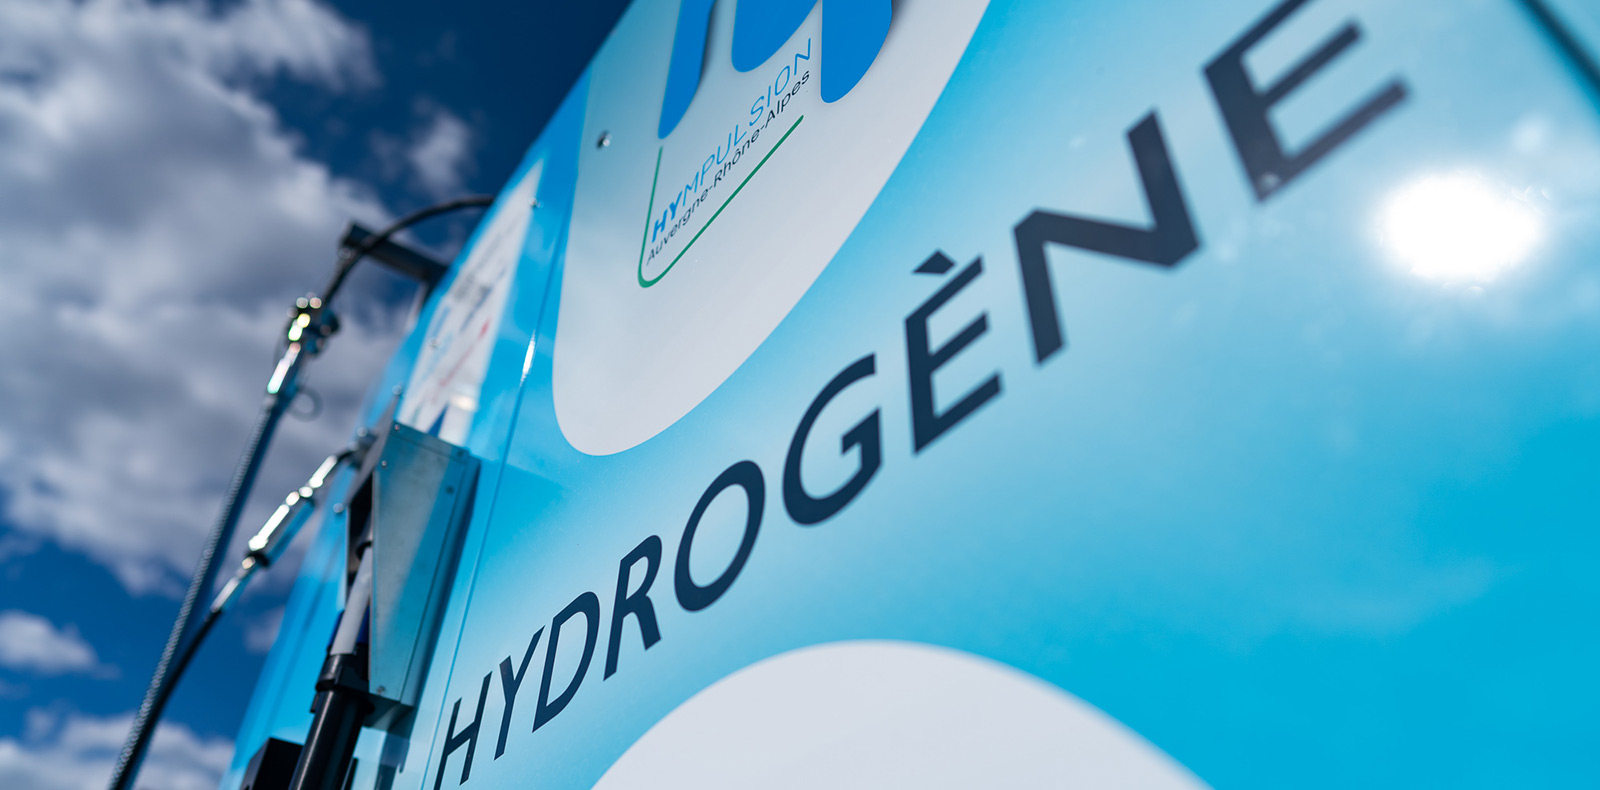 Hydrogen Station Michelin